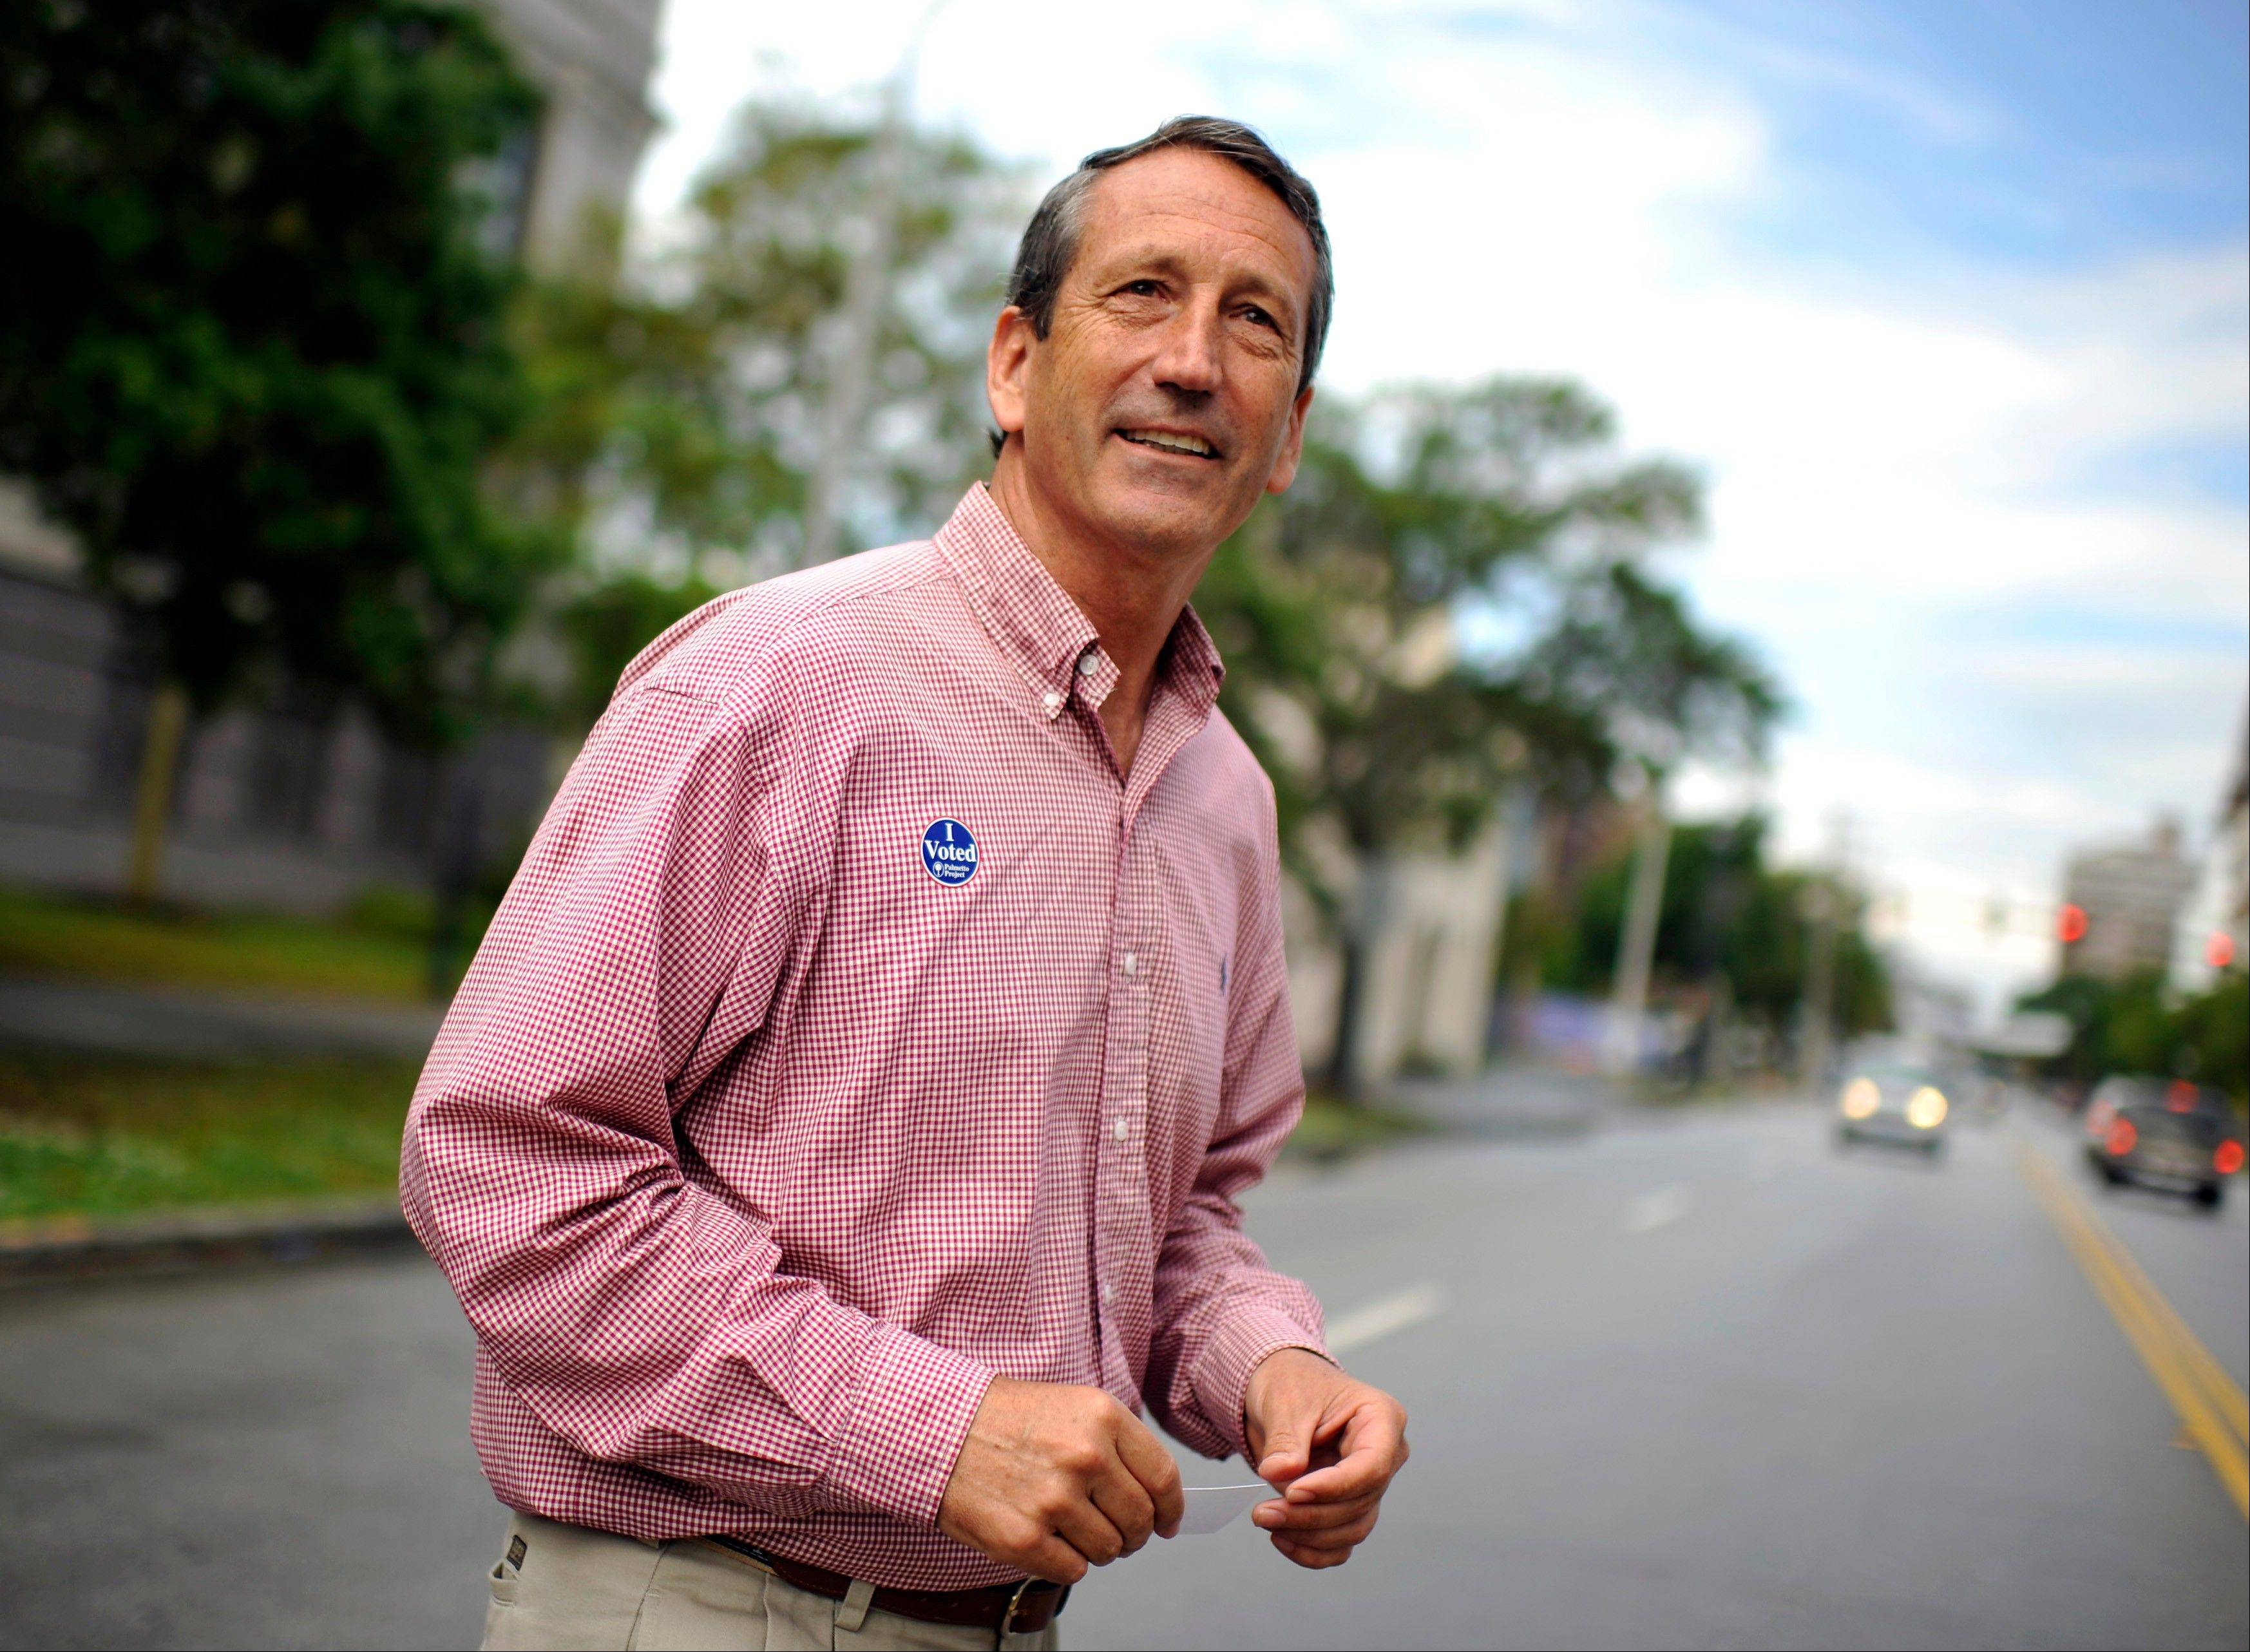 Former South Carolina Gov. Mark Sanford crosses the street after voting at a polling place in Charleston, S.C., Tuesday, May 7, 2013. Sanford, a Republican, and Colbert Busch, a Democrat and sister of political satirist Stephen Colbert, are to face off for the 1st Congressional District seat, that was vacated when Tim Scott was appointed to the U.S. Senate. Green Party candidate Eugene Platt also is on the ballot.